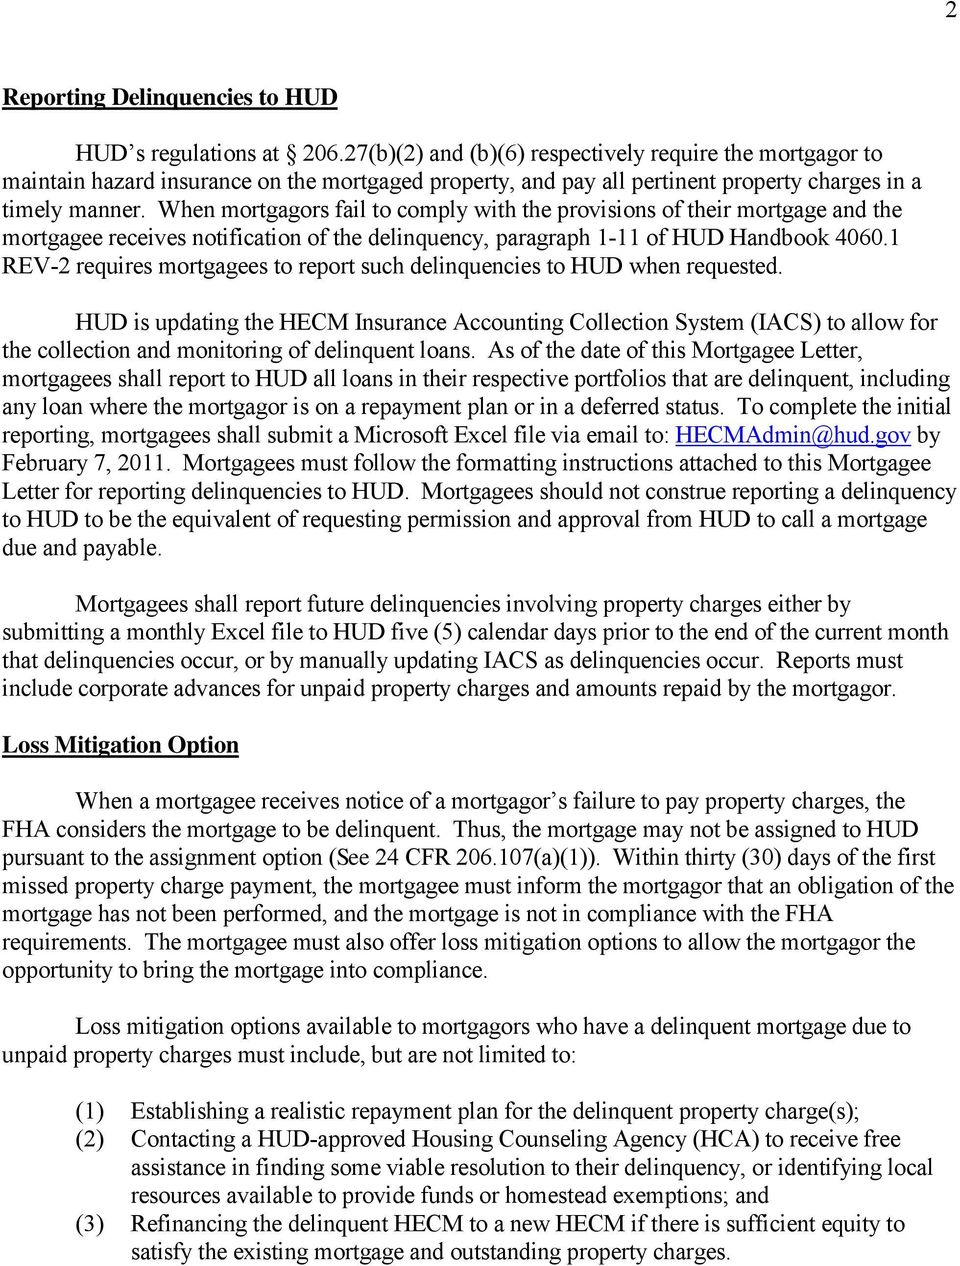 When mortgagors fail to comply with the provisions of their mortgage and the mortgagee receives notification of the delinquency, paragraph 1-11 of HUD Handbook 4060.